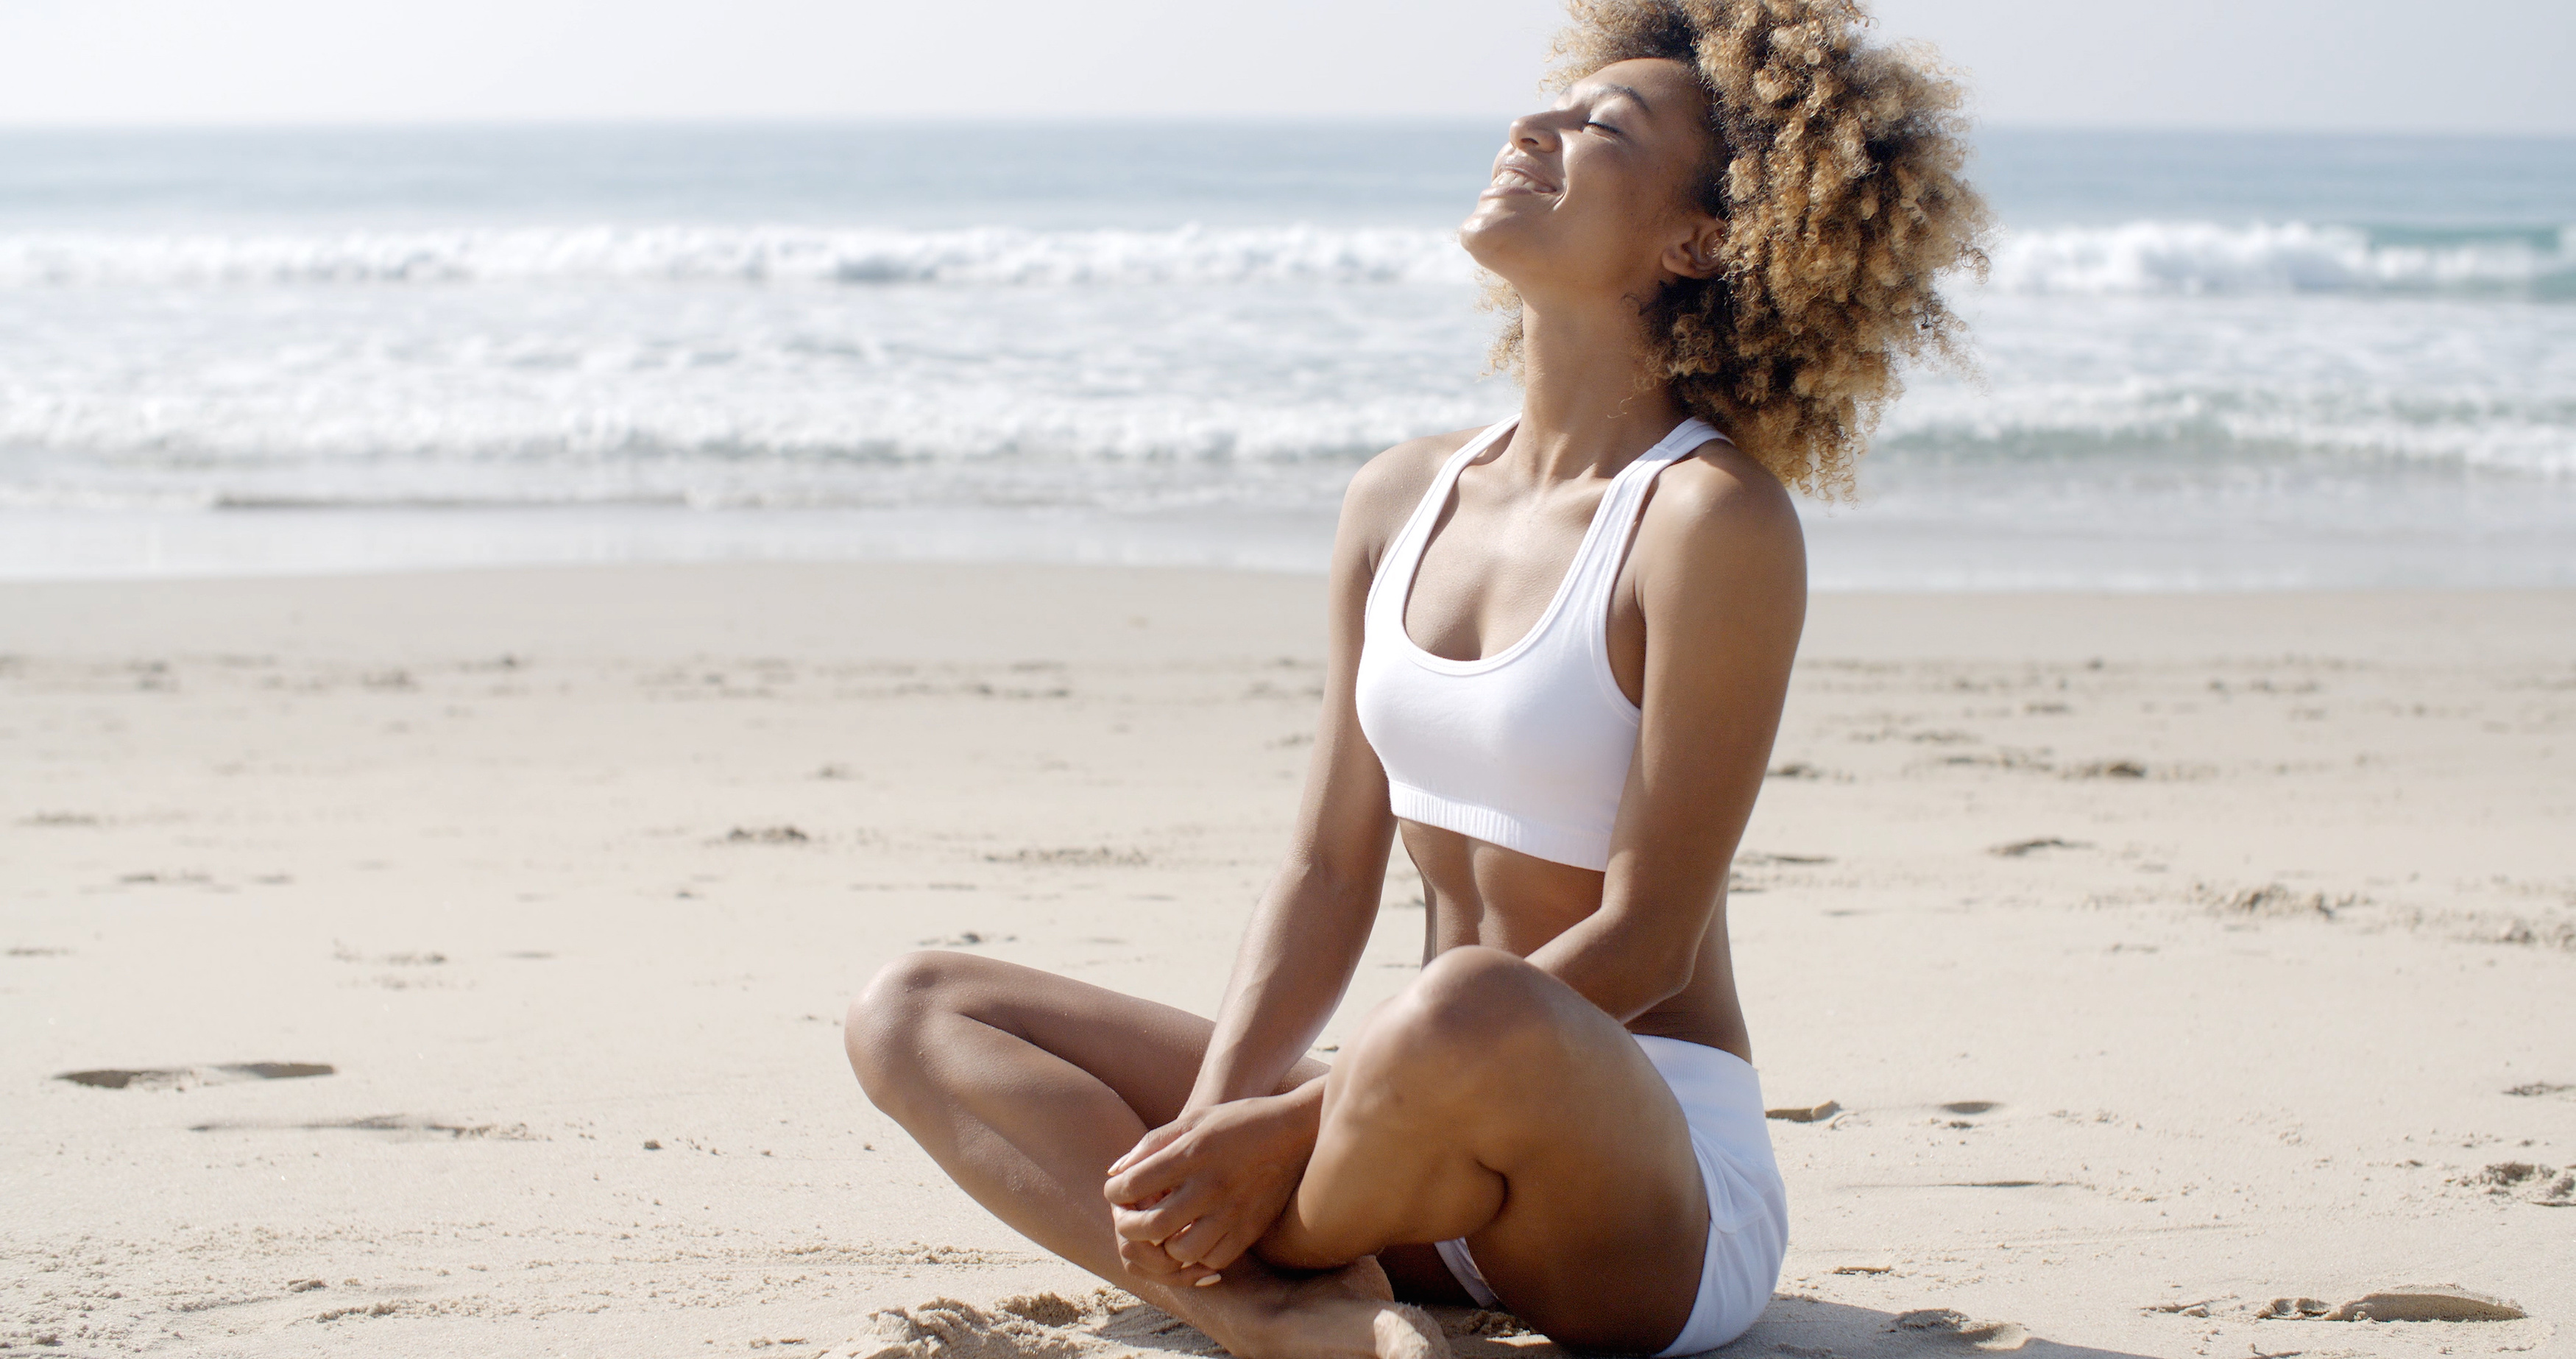 Woman Meditating On Beach In Lotus Position